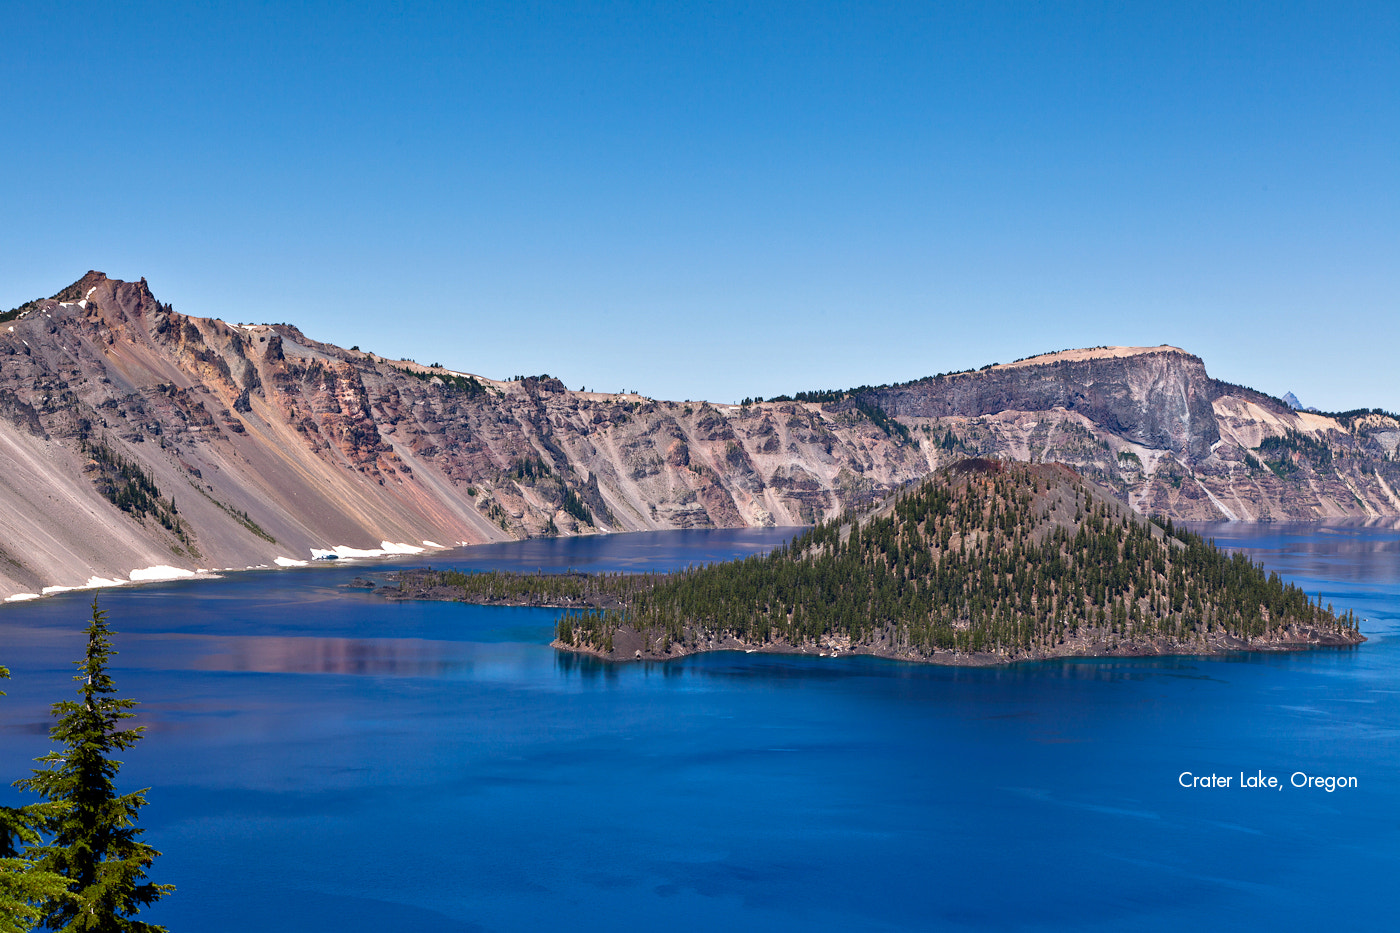 Photograph Crater Lake, Oregon by Kyle Mahoney on 500px